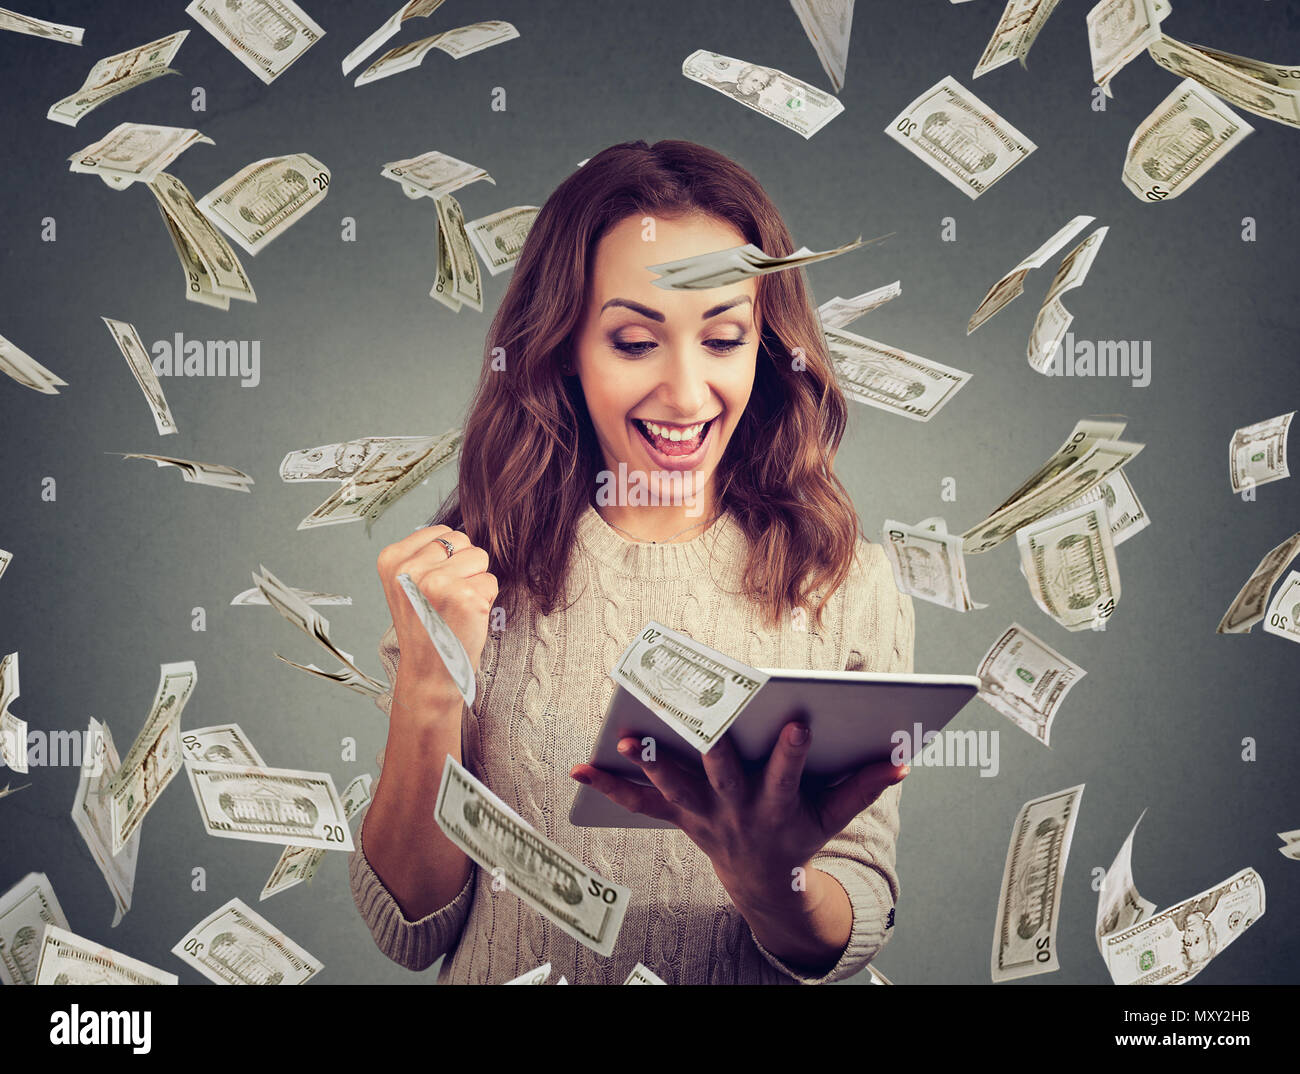 Cheerful woman with table happy with lottery win and holding fist up in money flying around - Stock Image